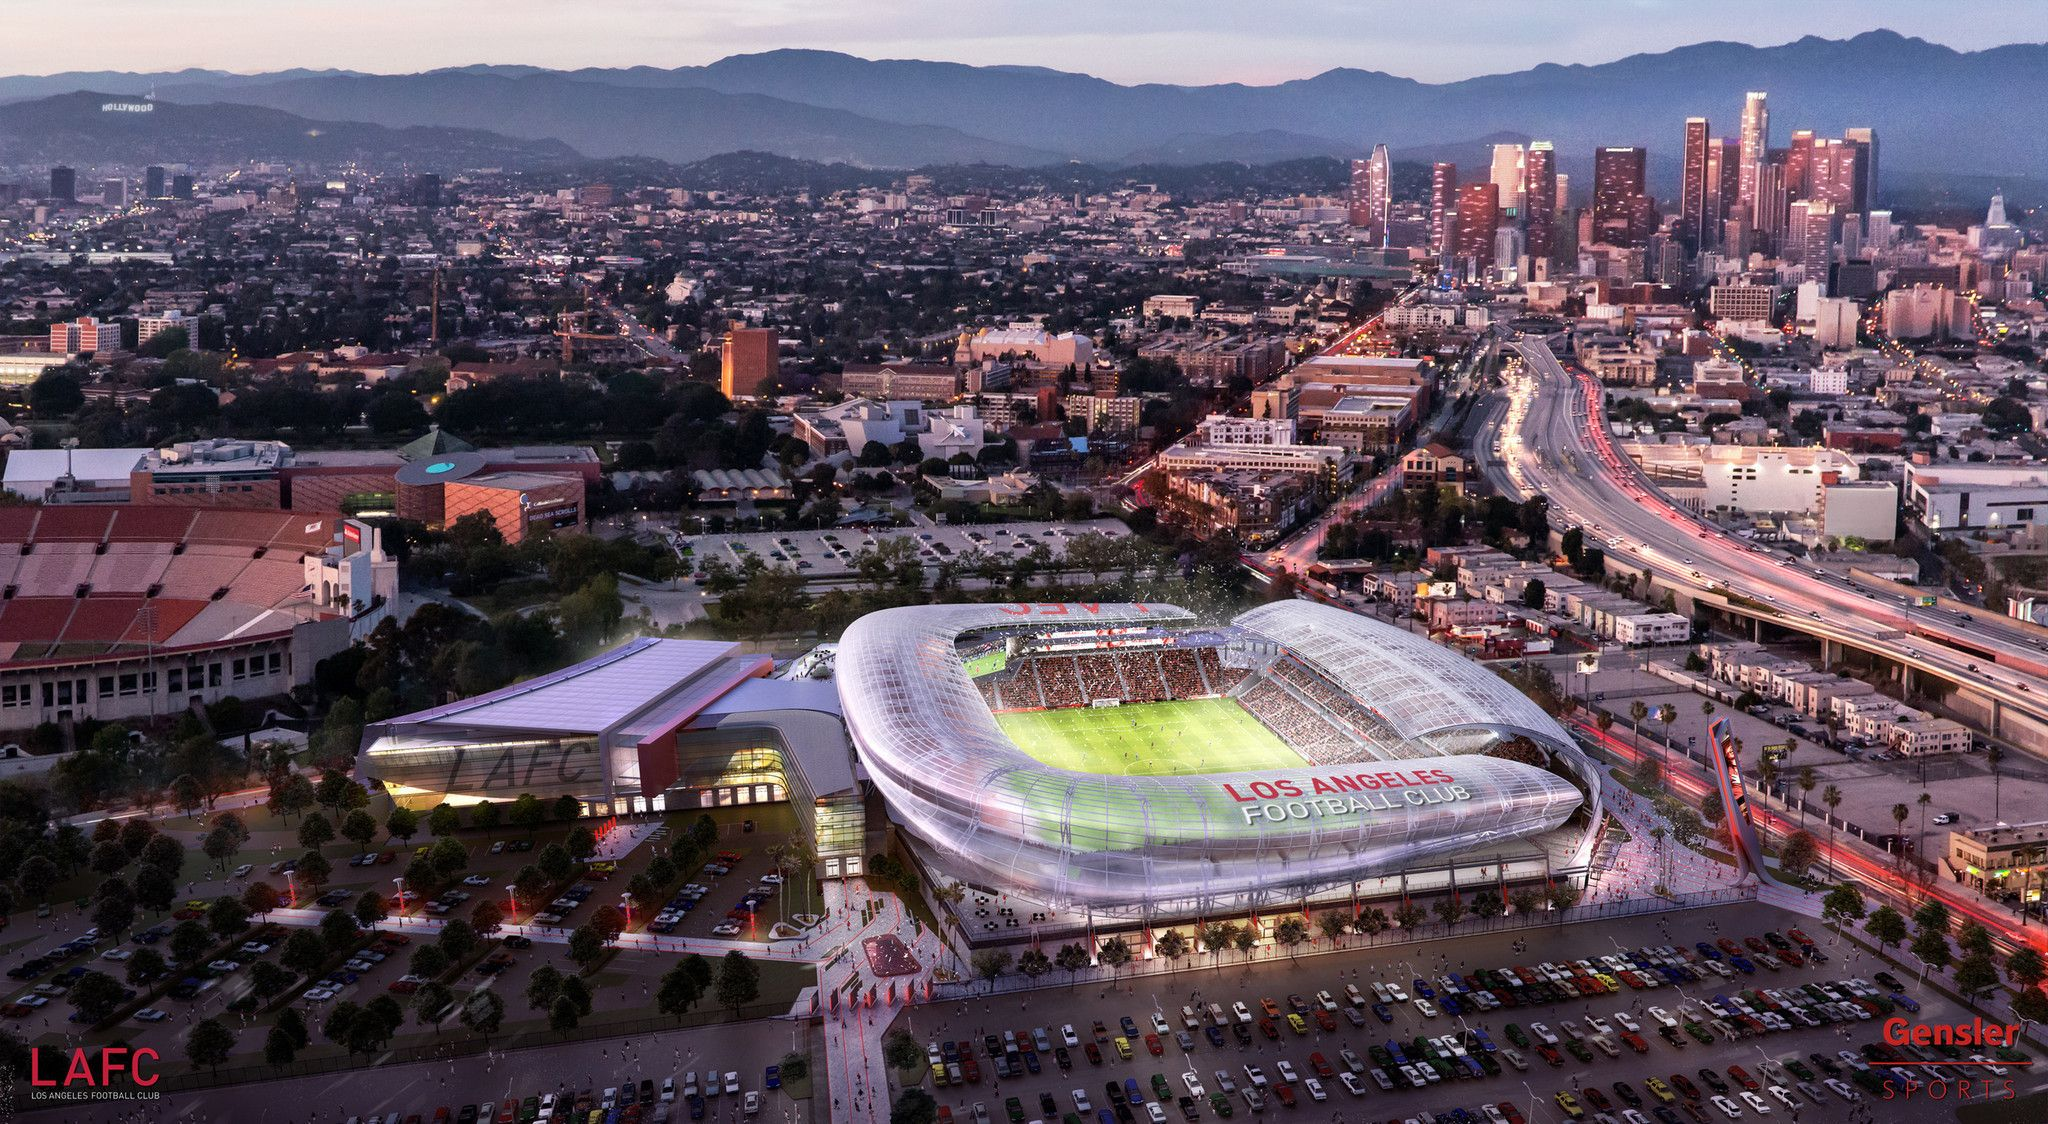 Banc Of California Snags Naming Rights For L A Football Club Soccer Stadium Los Angeles Times Soccer Stadium Sports Arena Los Angeles Football Club